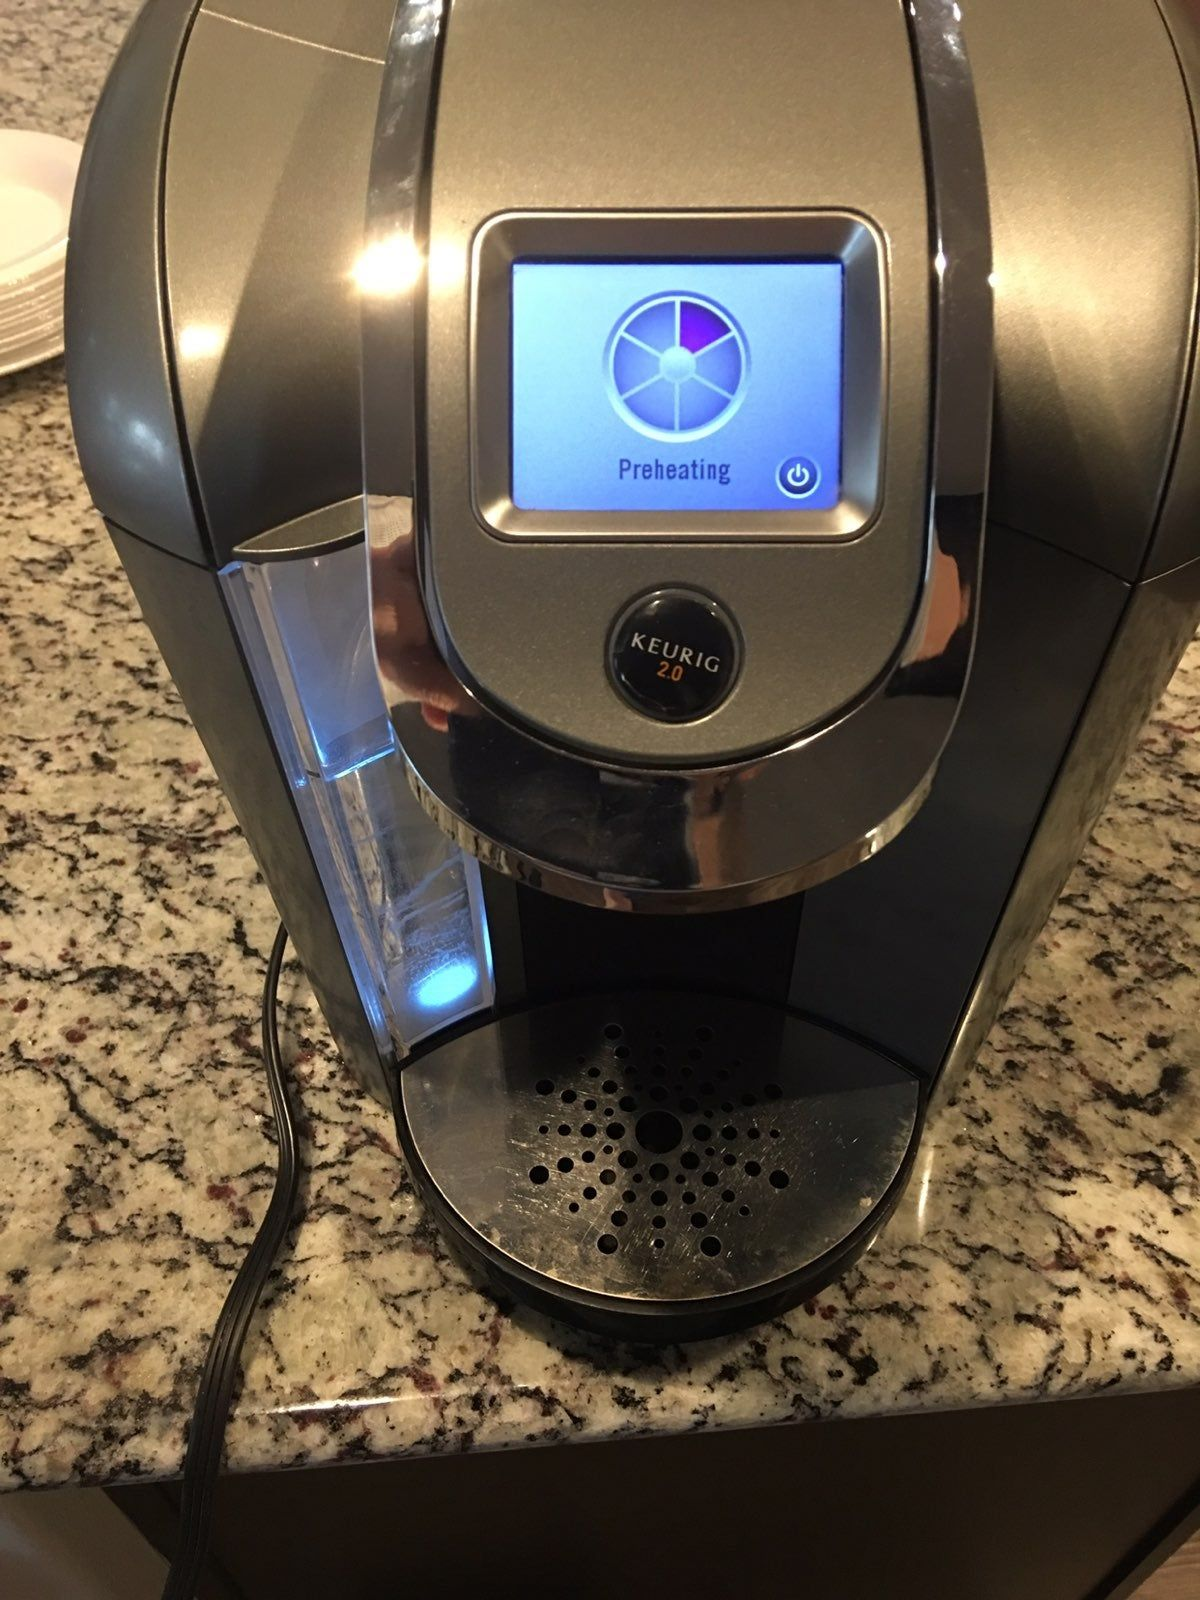 Keurig 2.0 coffee Maker Works sometimes, it's really hit